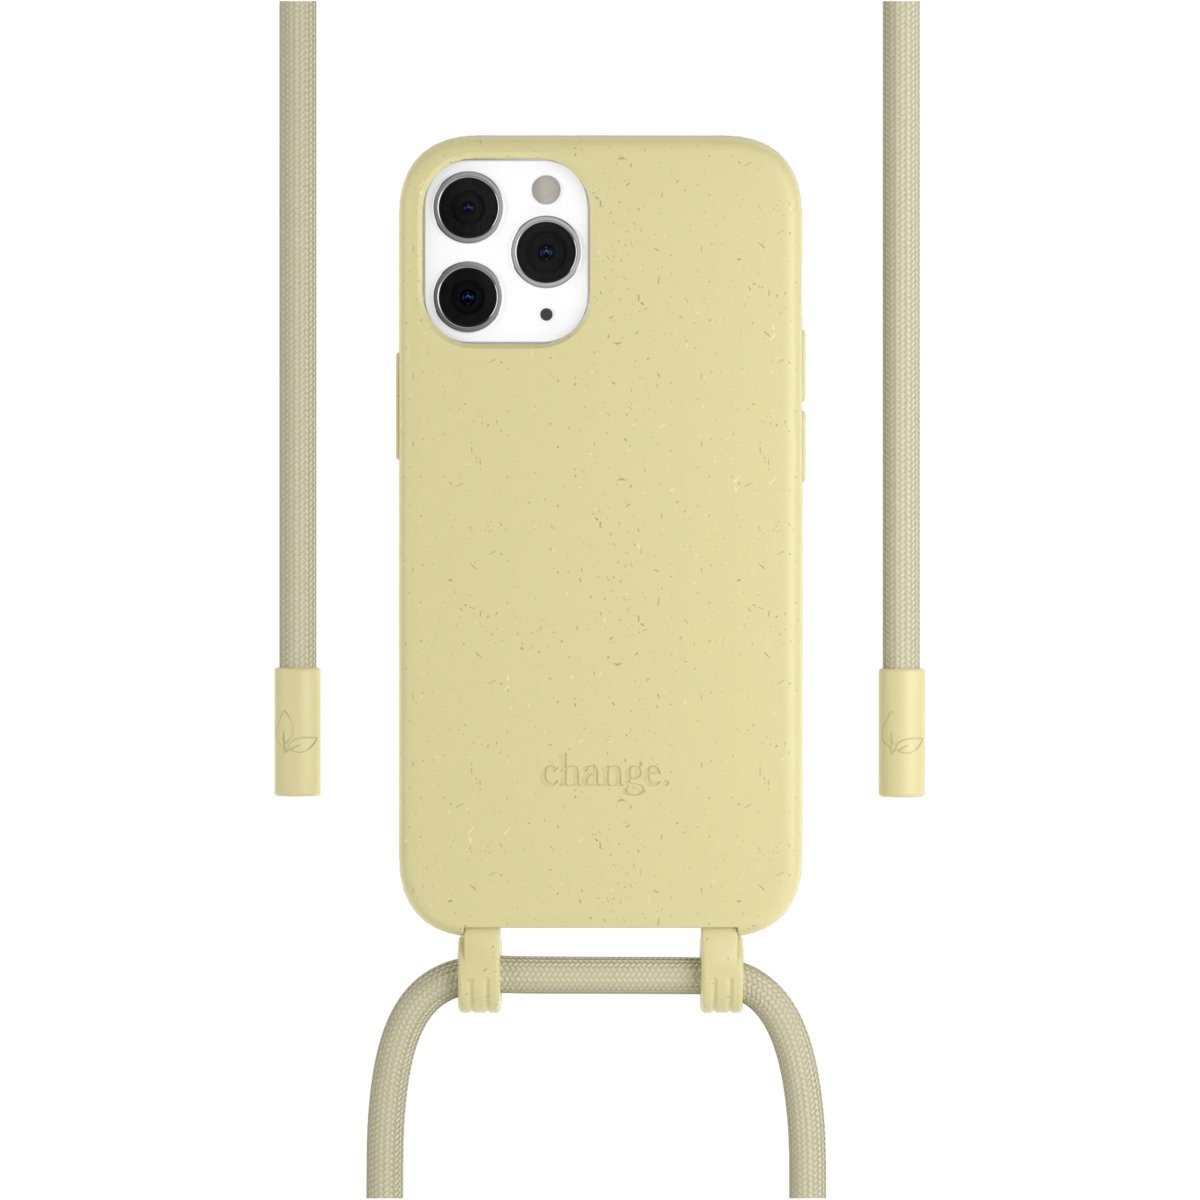 Woodcessories Change Case AM iPhone 12 / 12 Pro - yellow